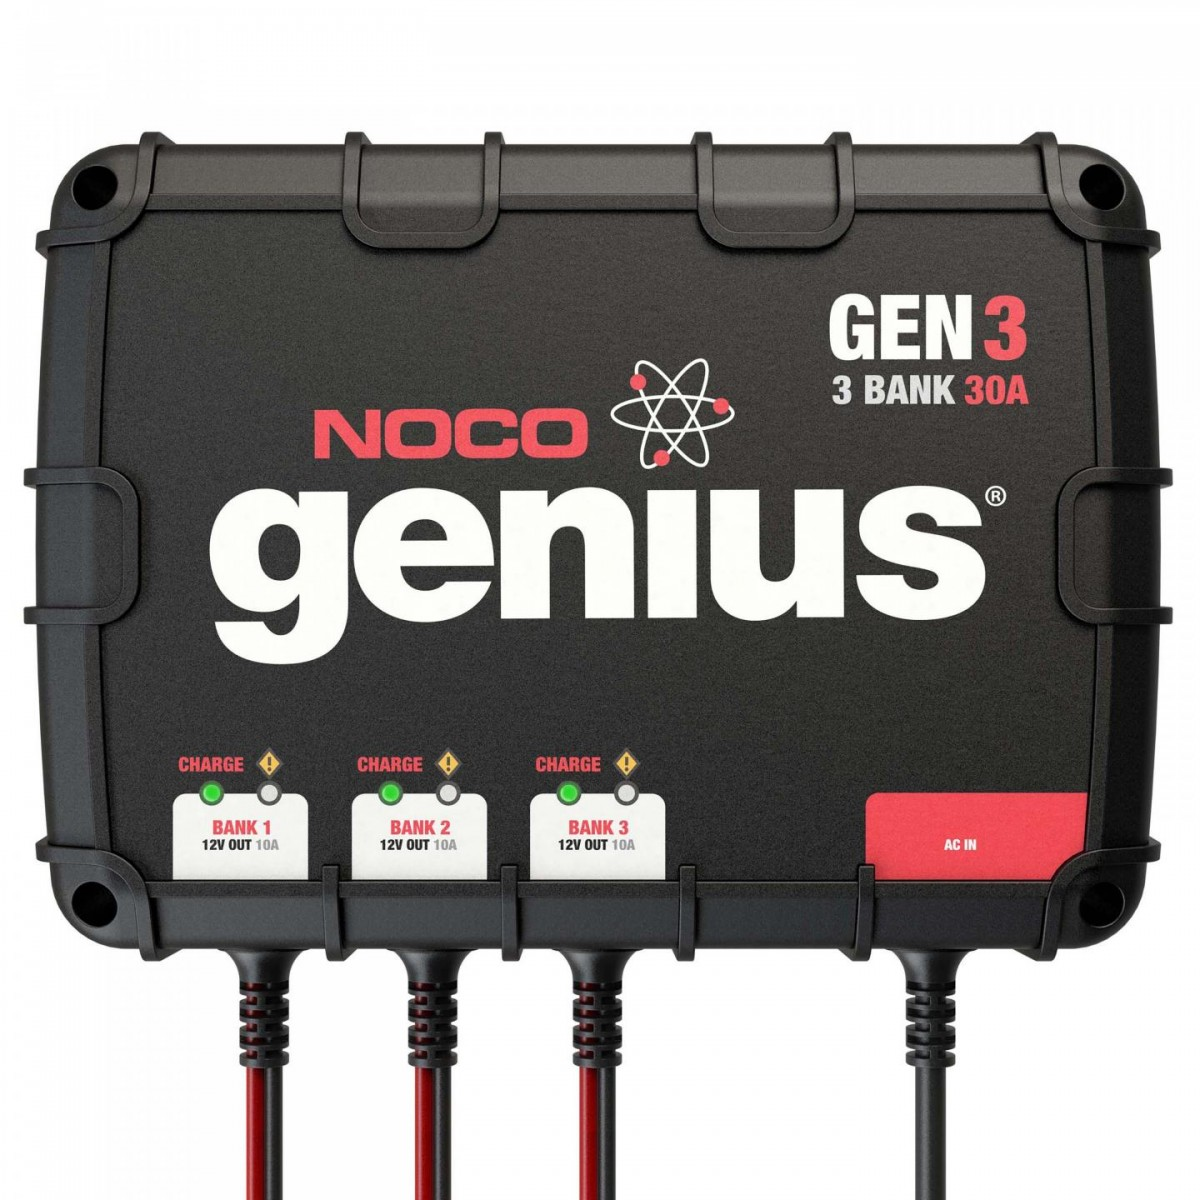 Noco 3 Bank 30a On Board Battery Charger Gen3 Marine Wiring Diagram